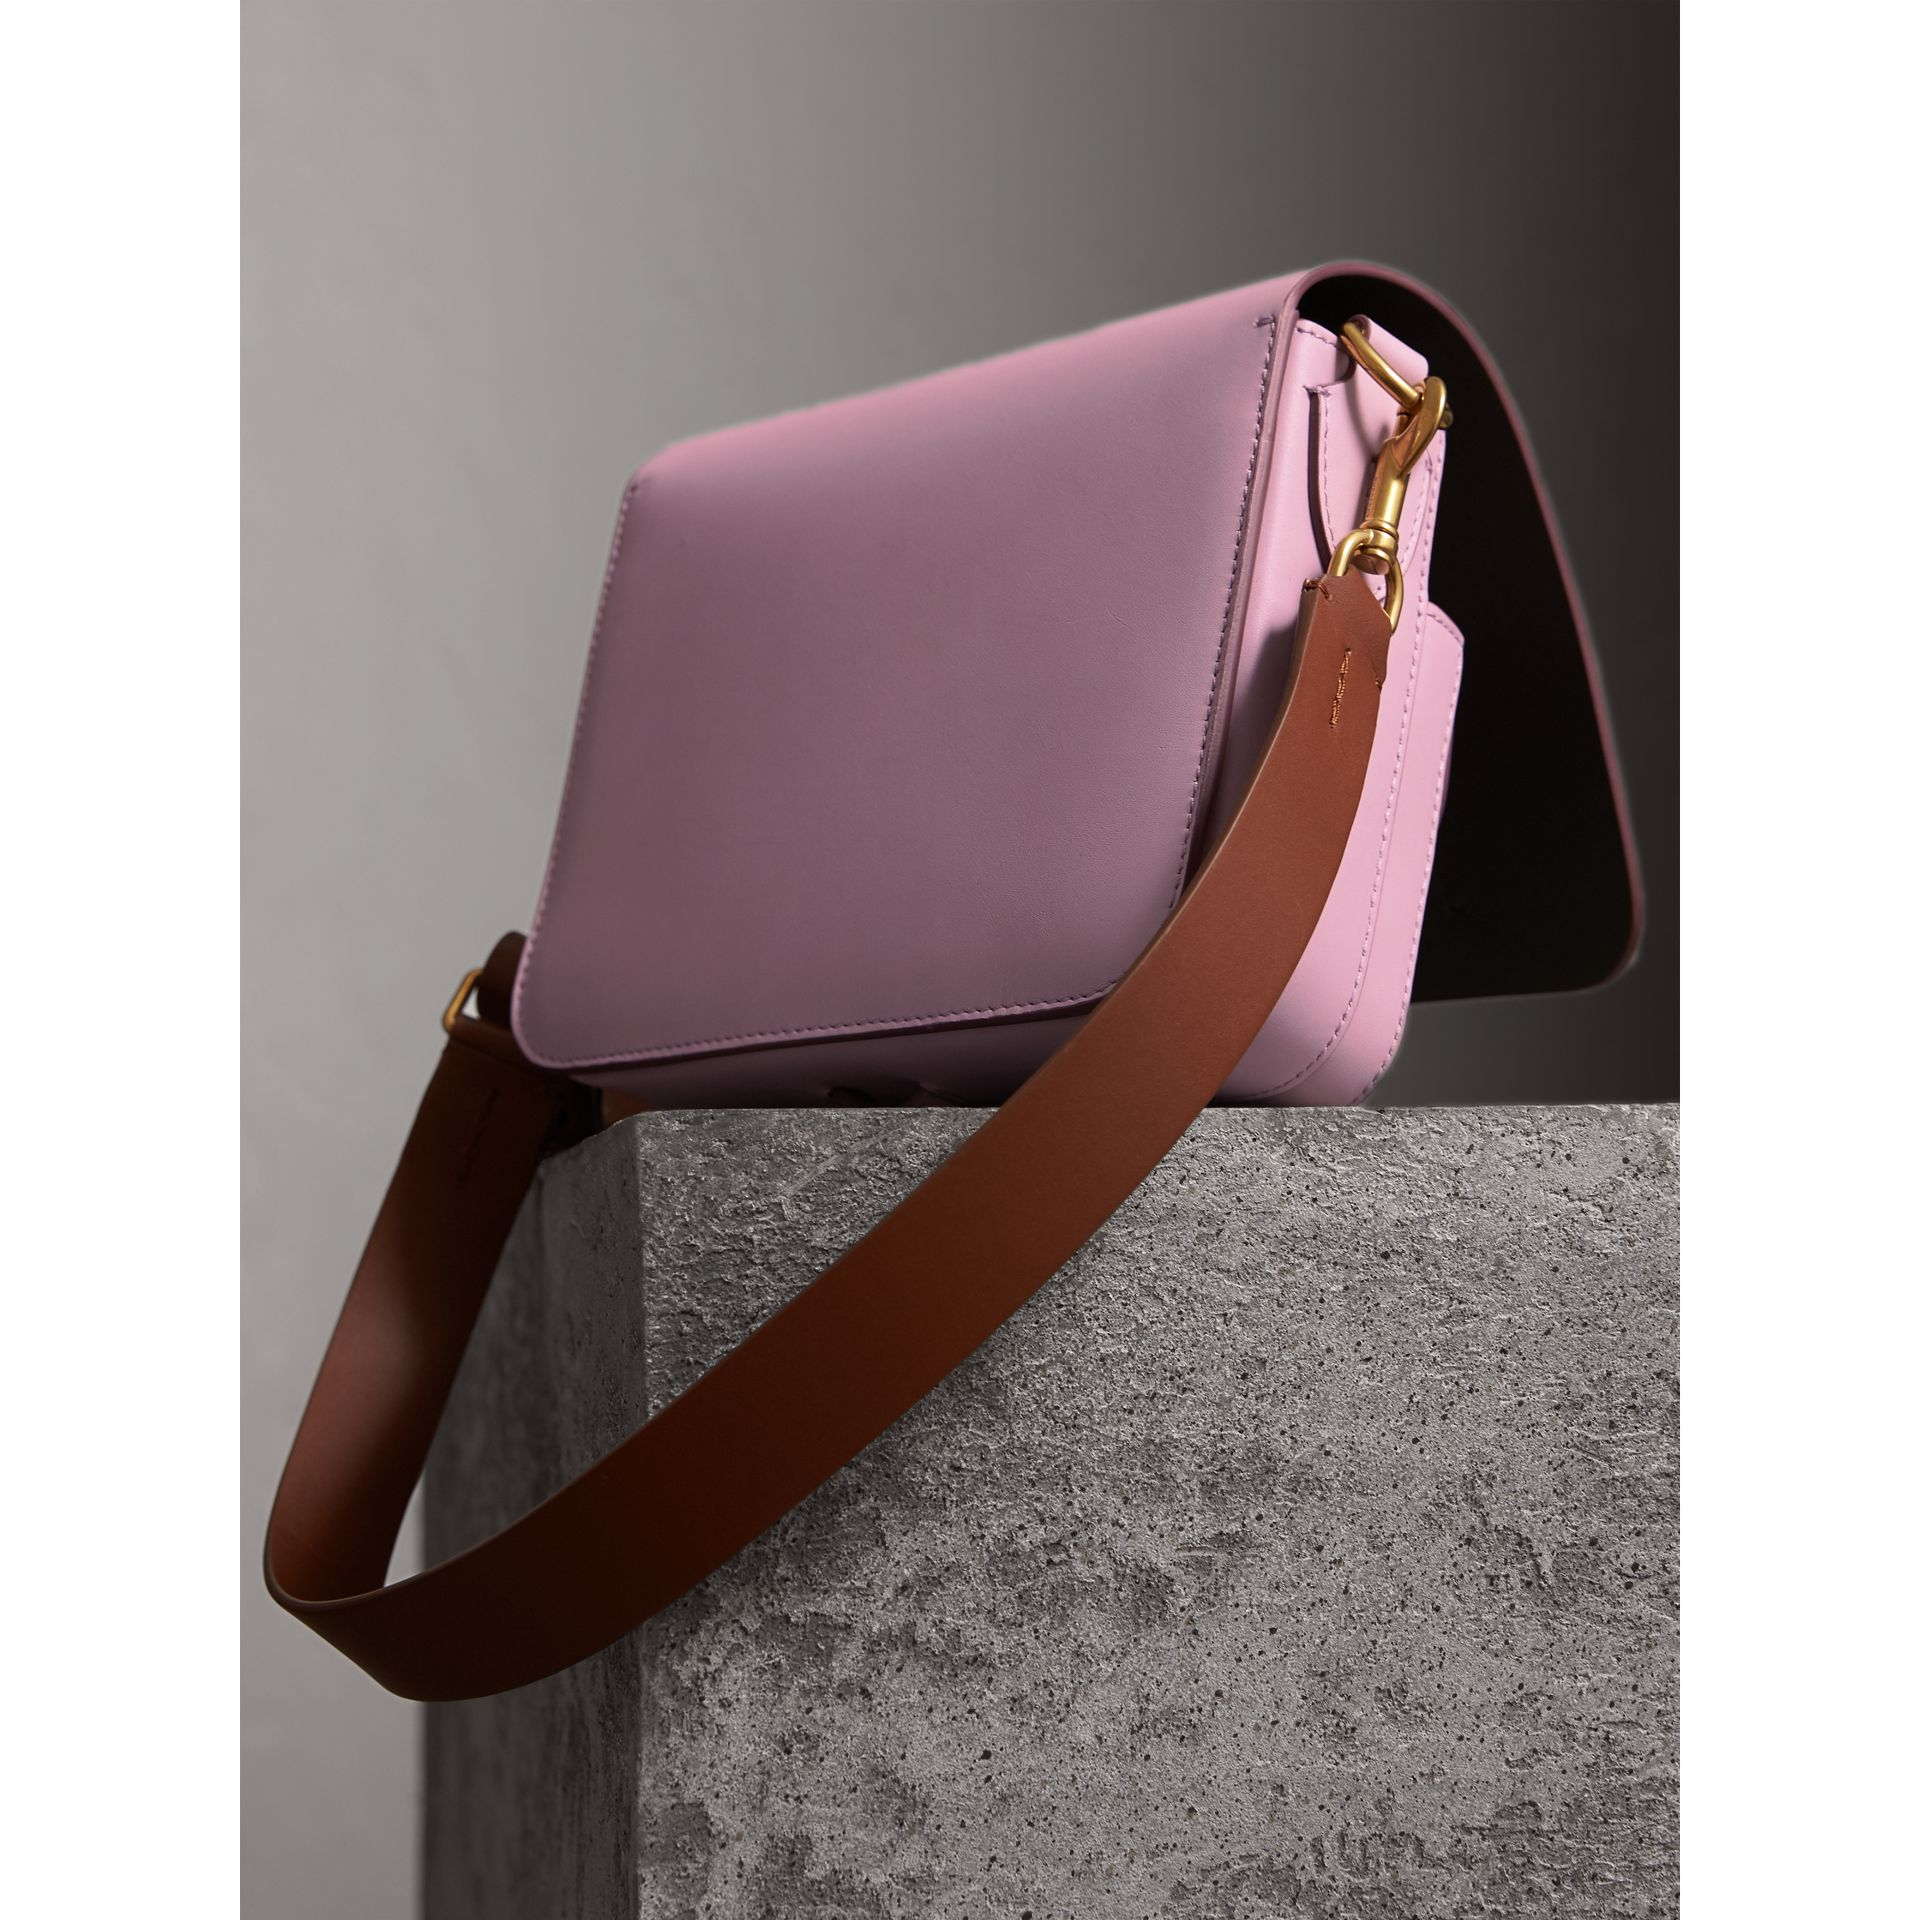 The Square Satchel in Leather in Pale Lavender - Women | Burberry United Kingdom - gallery image 4